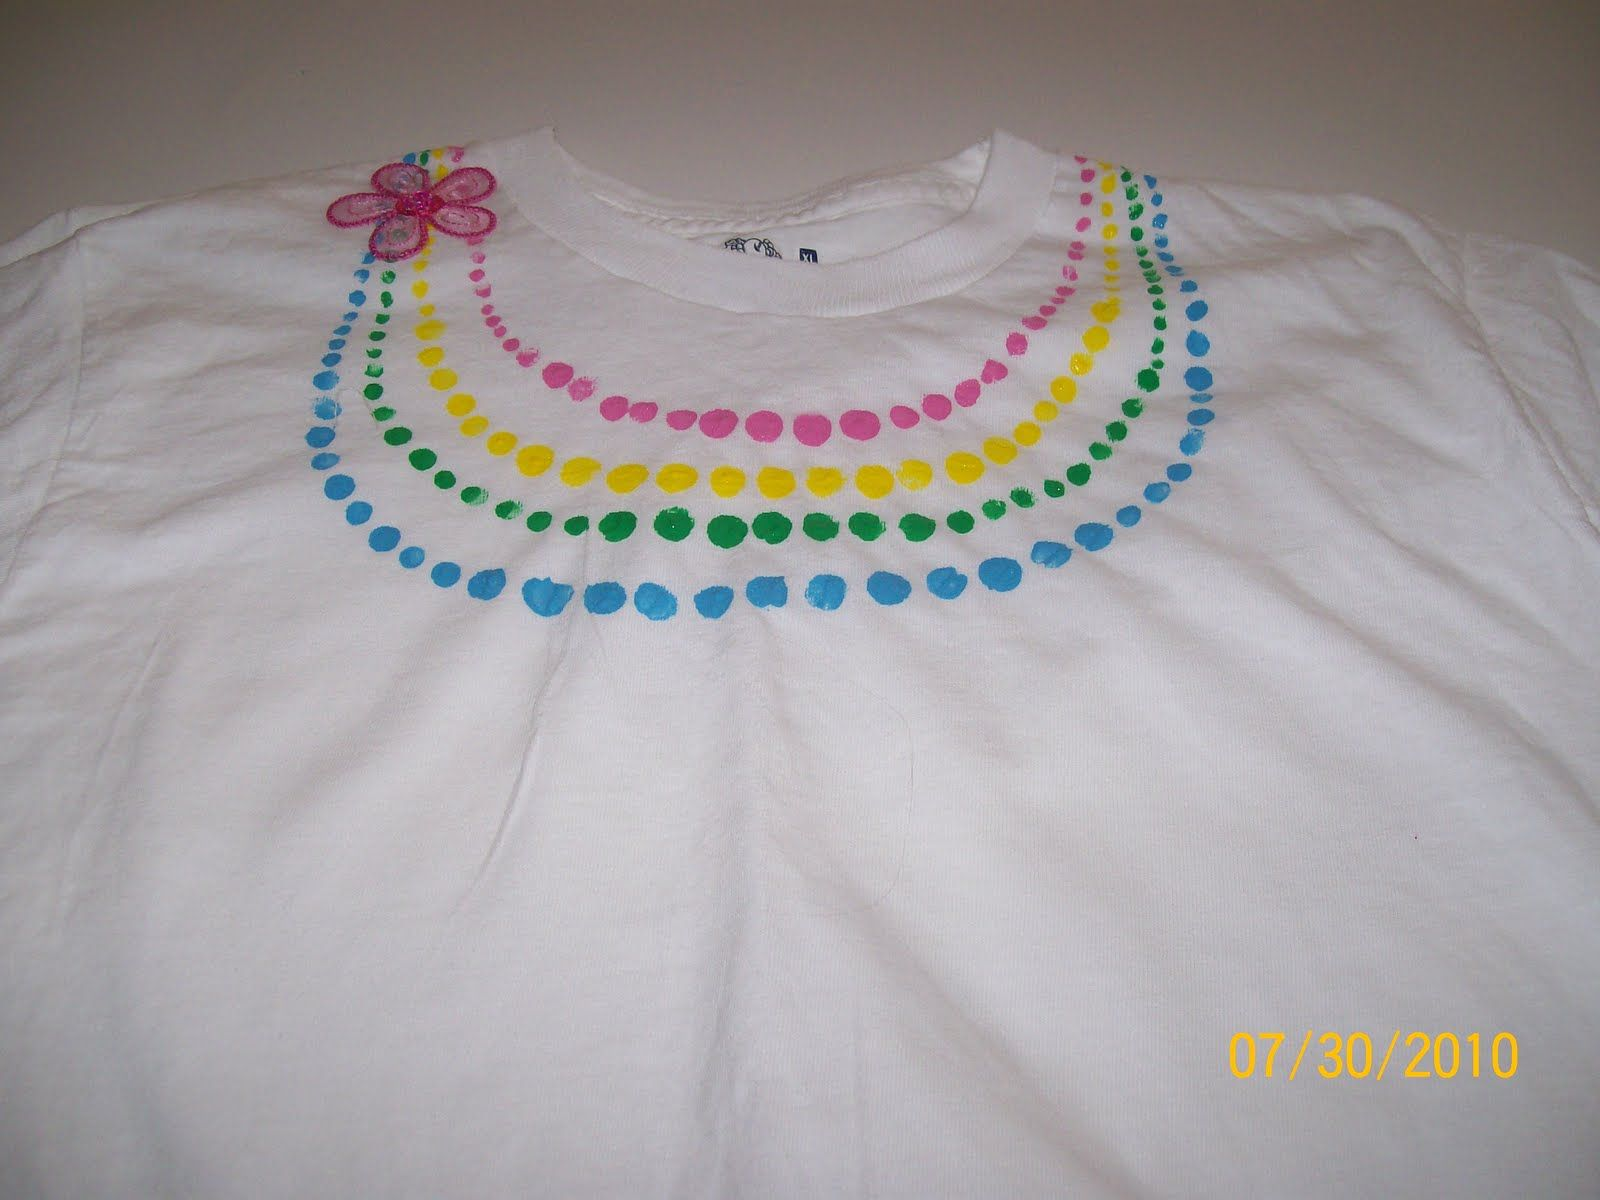 Puffy paint designs - Puffy Paint Shirt Ideas Google Search